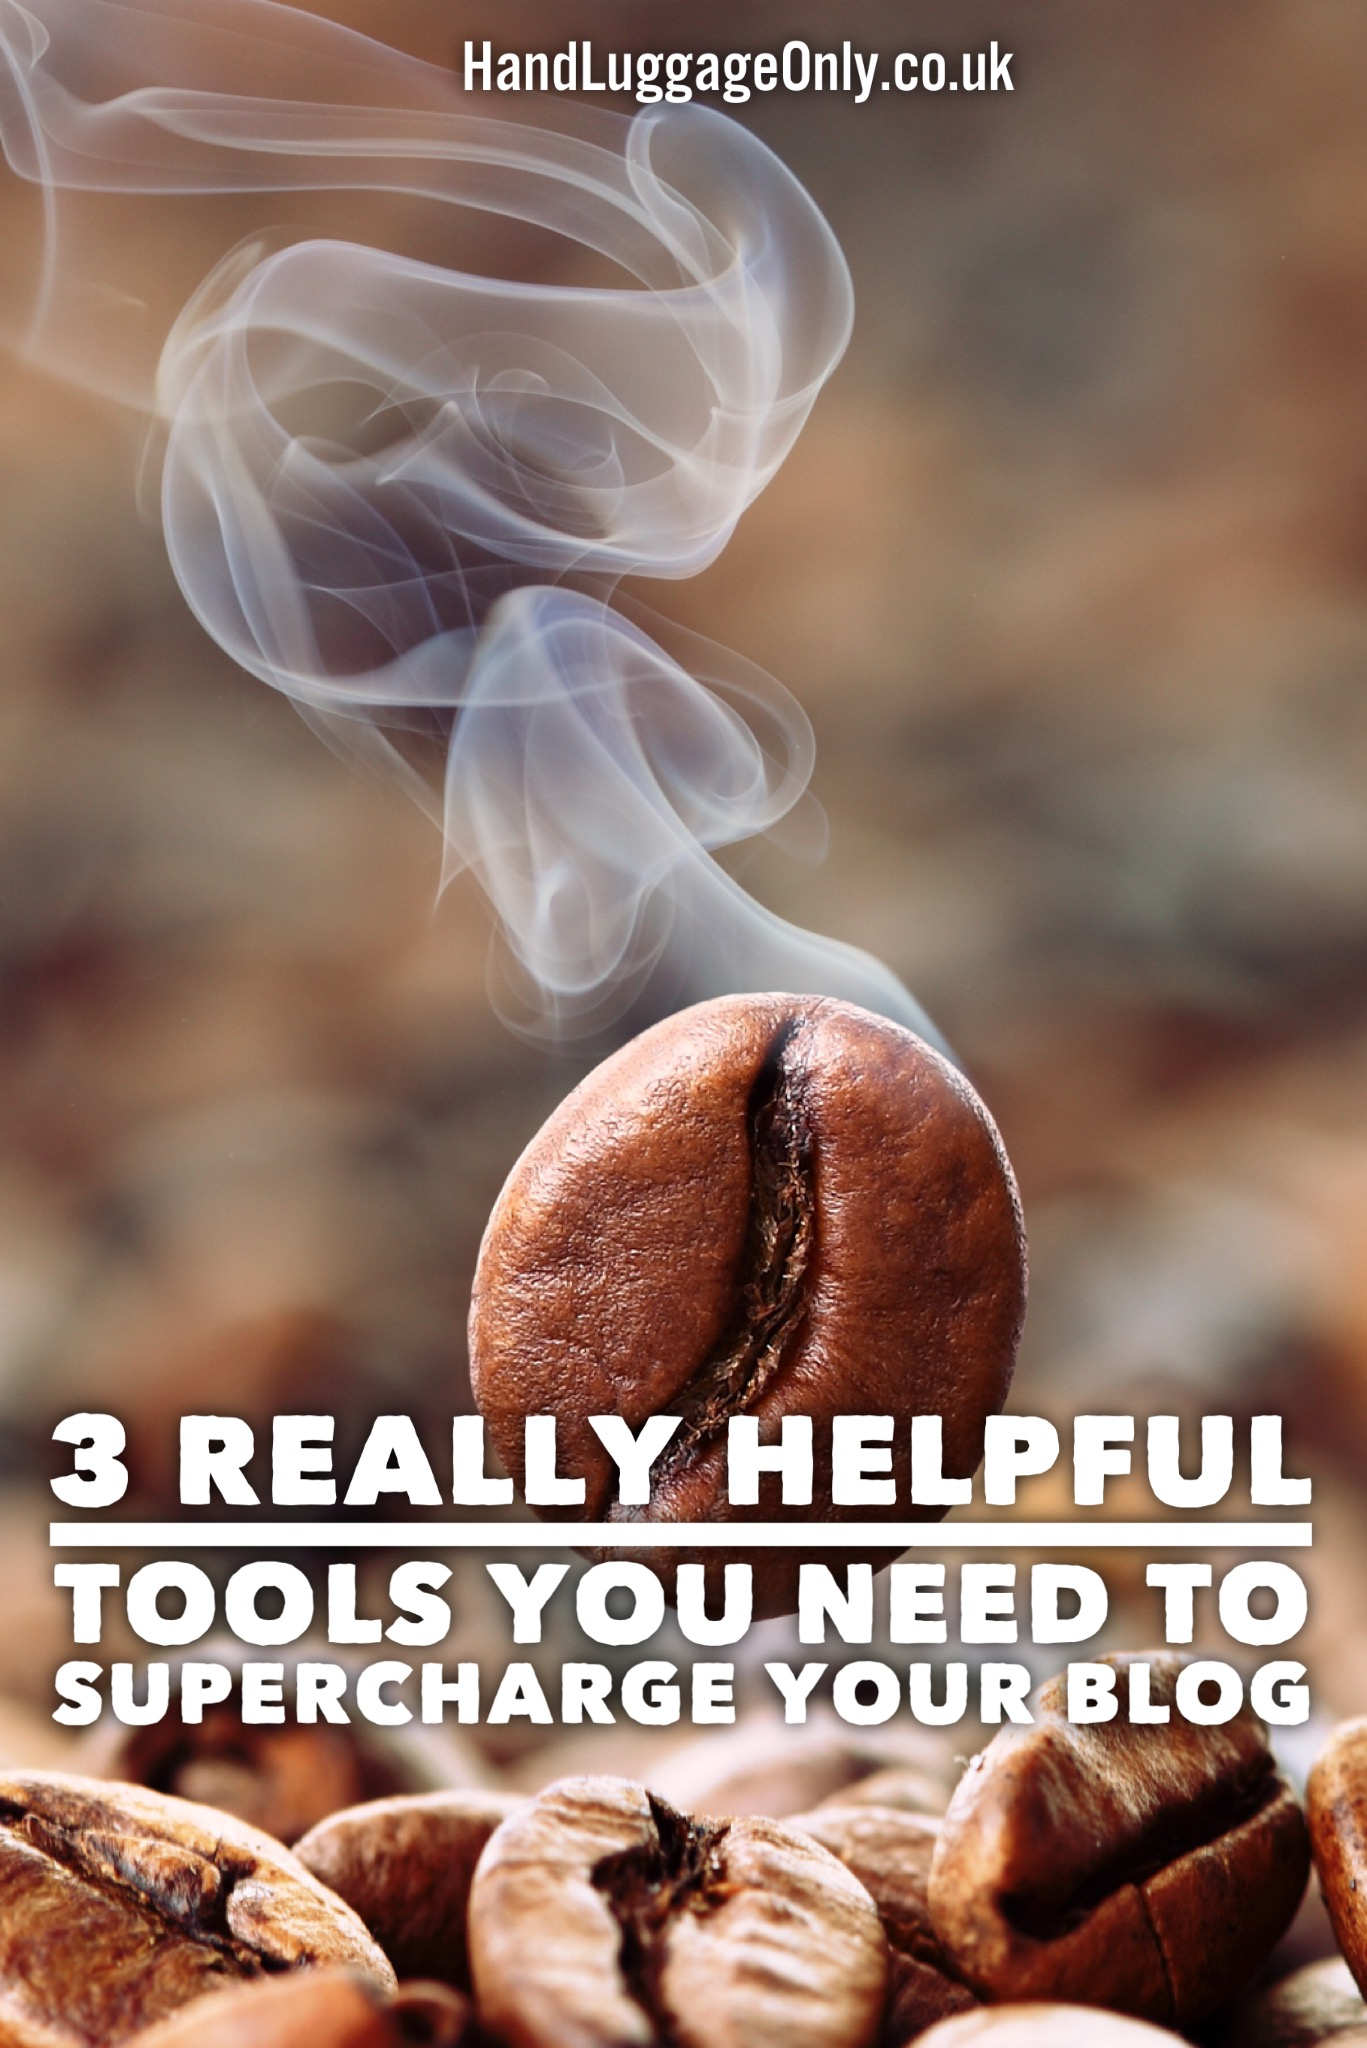 3 Really Helpful Tools You Need To Supercharge Your Blog